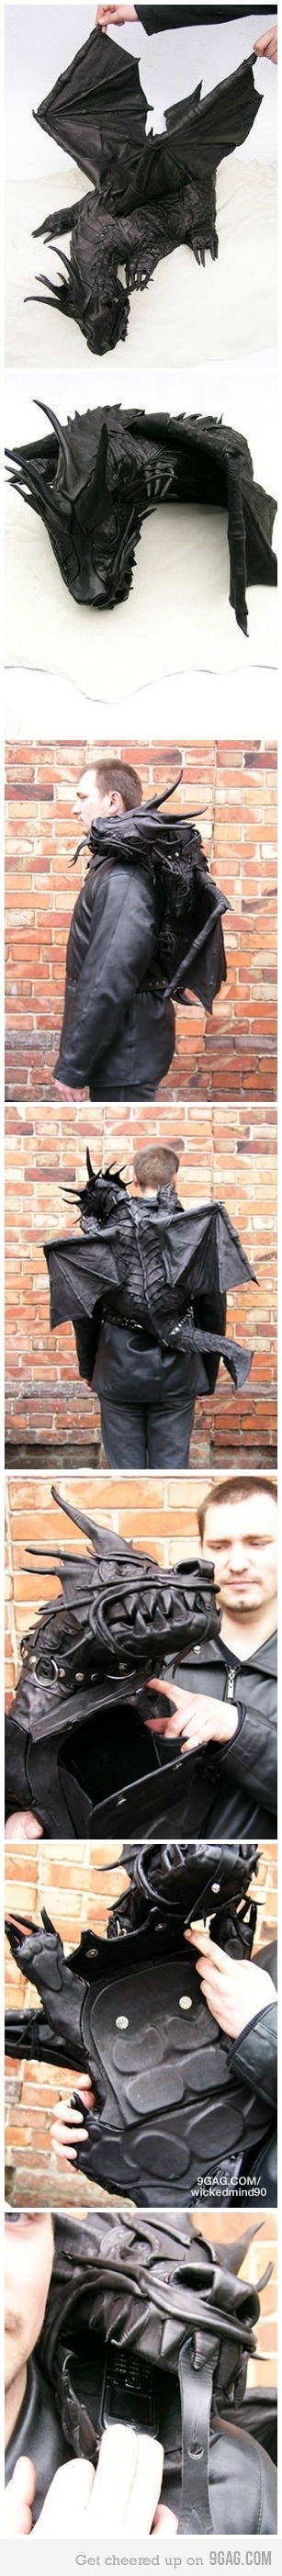 dragon backpack- one of my favorite weird things. Amazing!